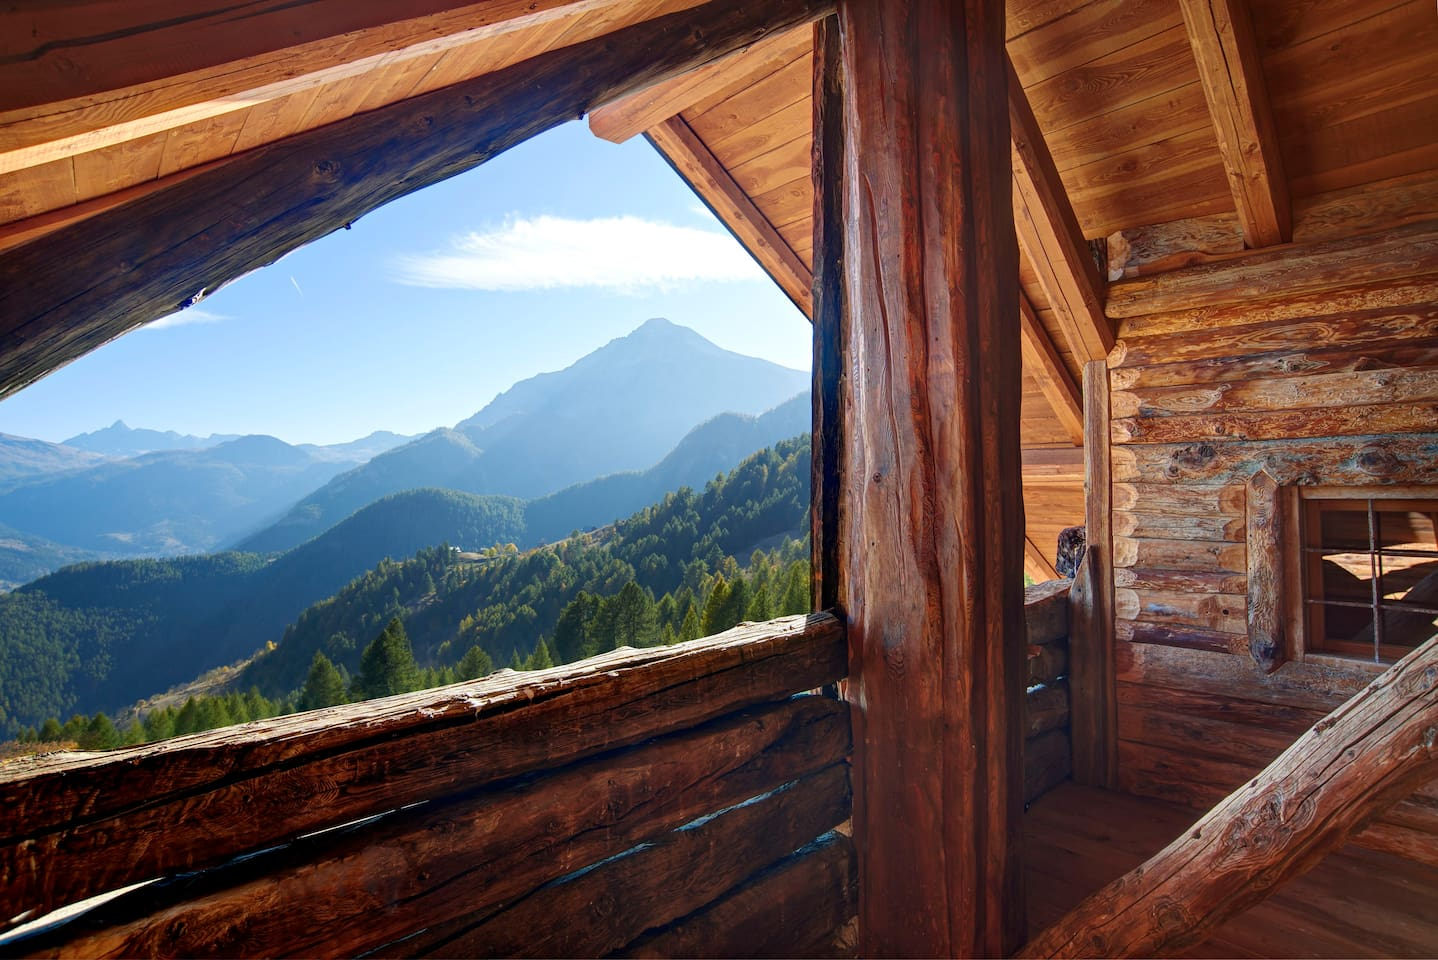 Astonishing view of the wilderness of the Susa Valley